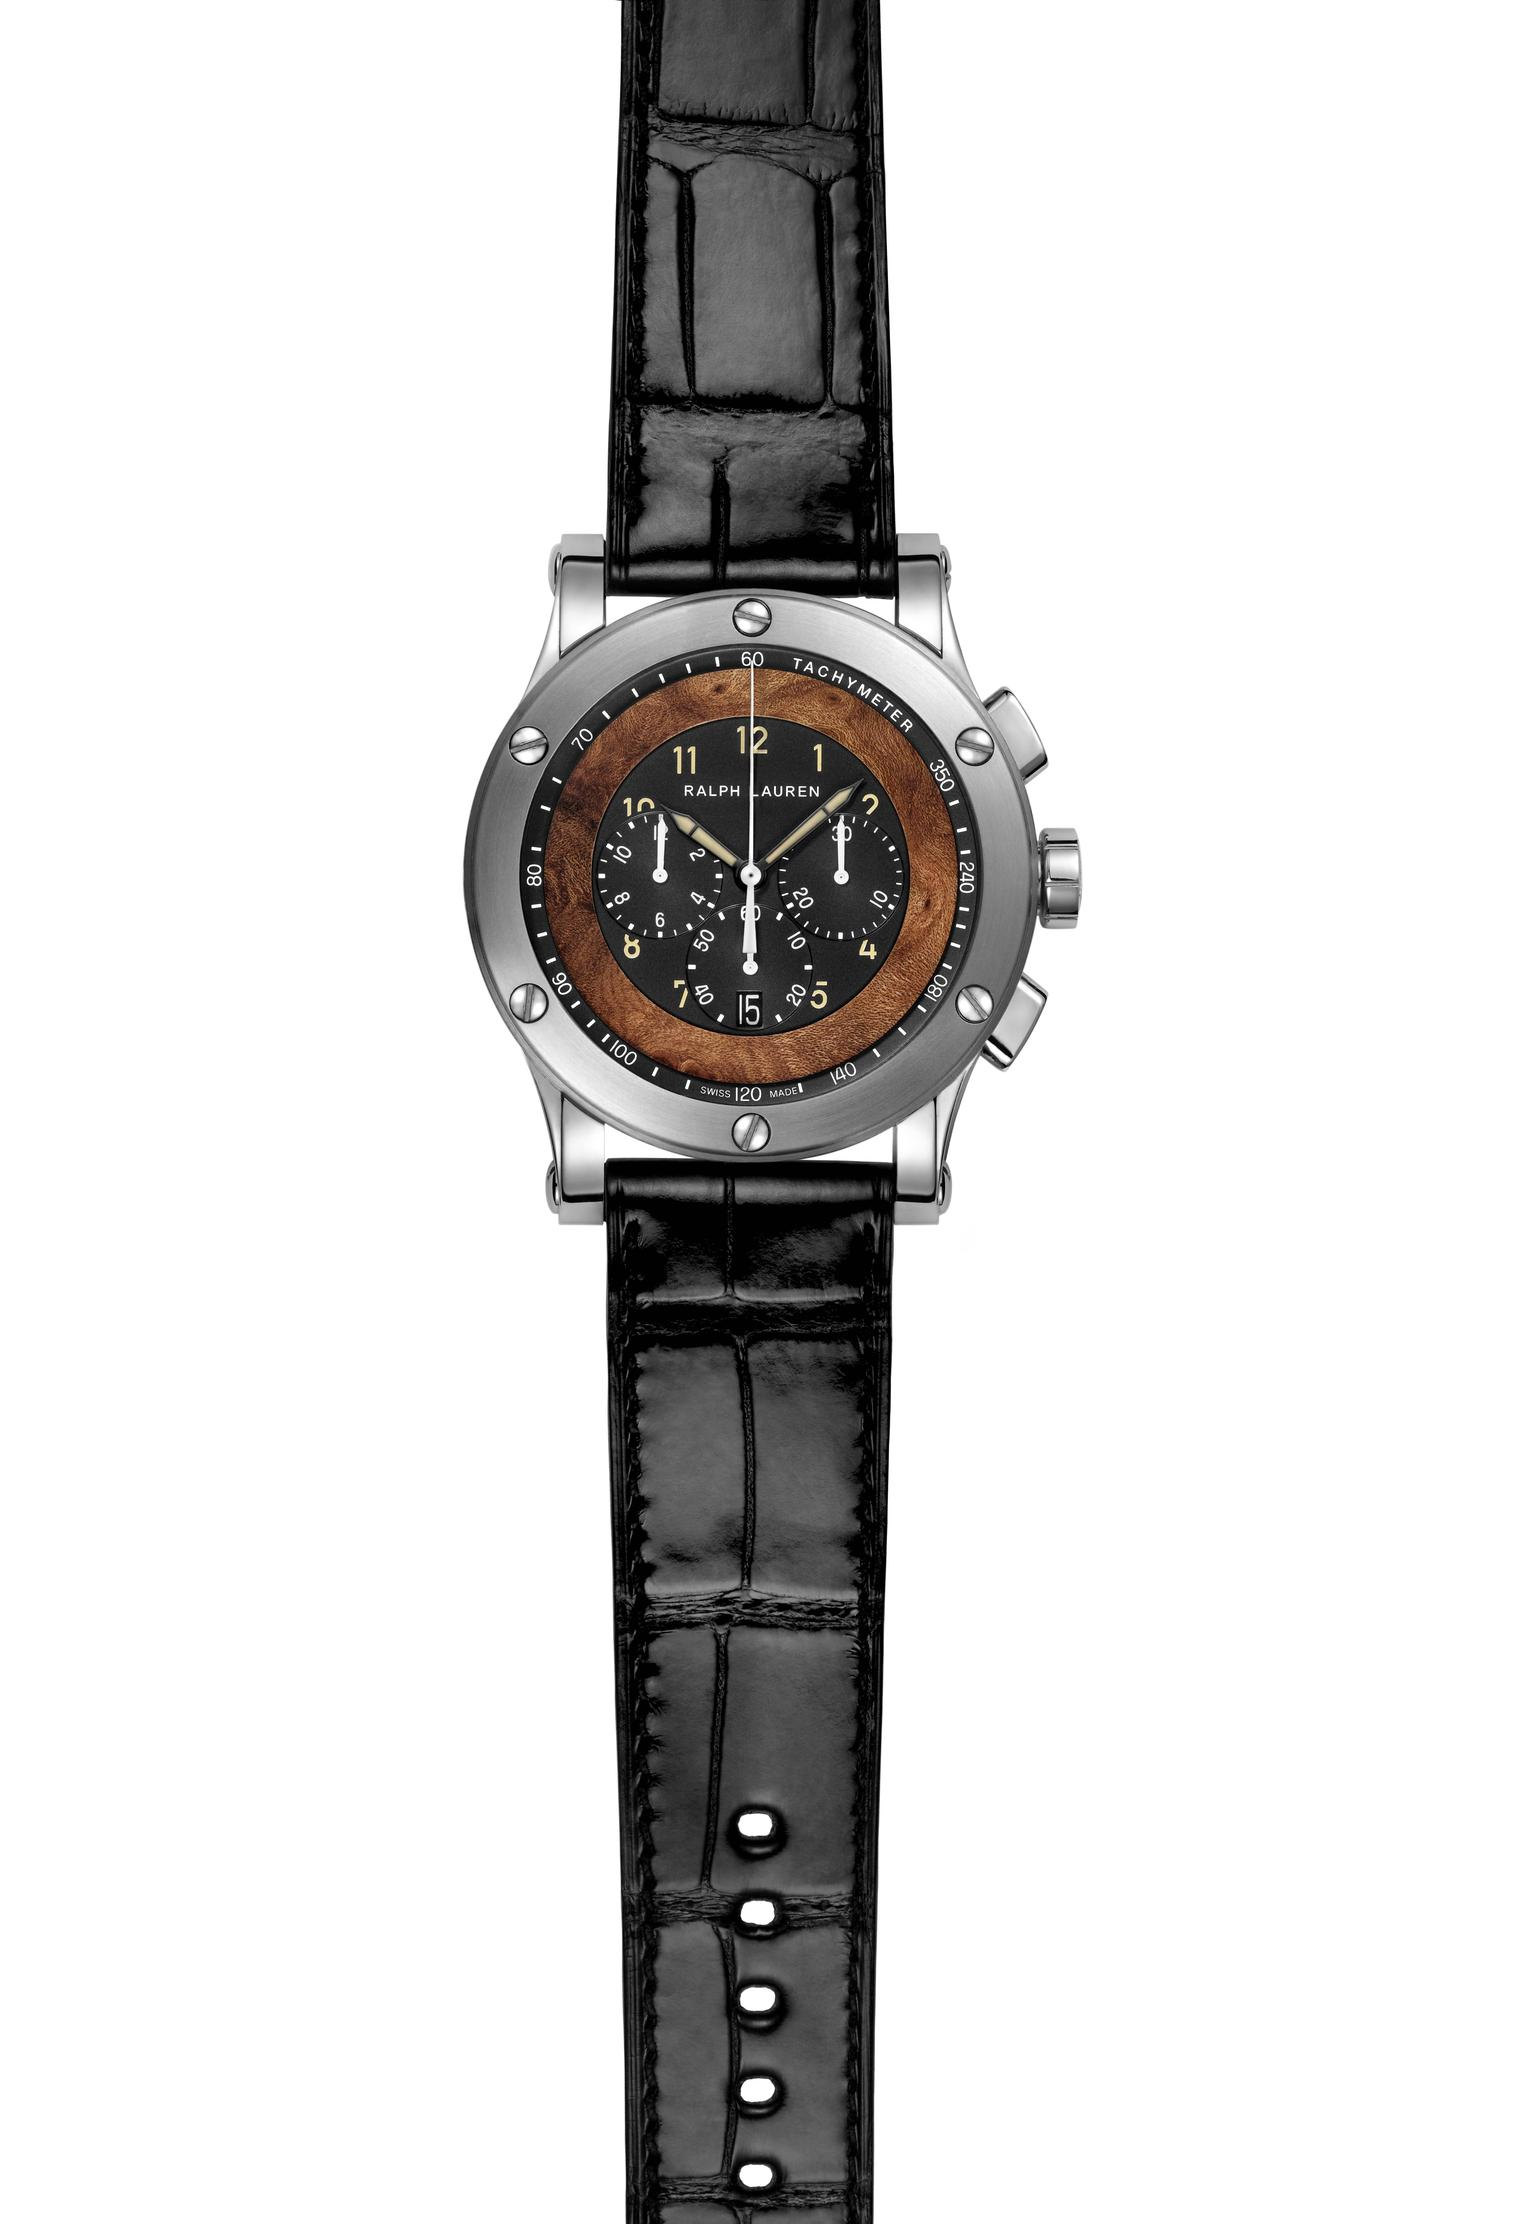 Ralph Lauren Automotive Chronograph watch with a Jaeger-LeCoultre manufacture chronograph movement